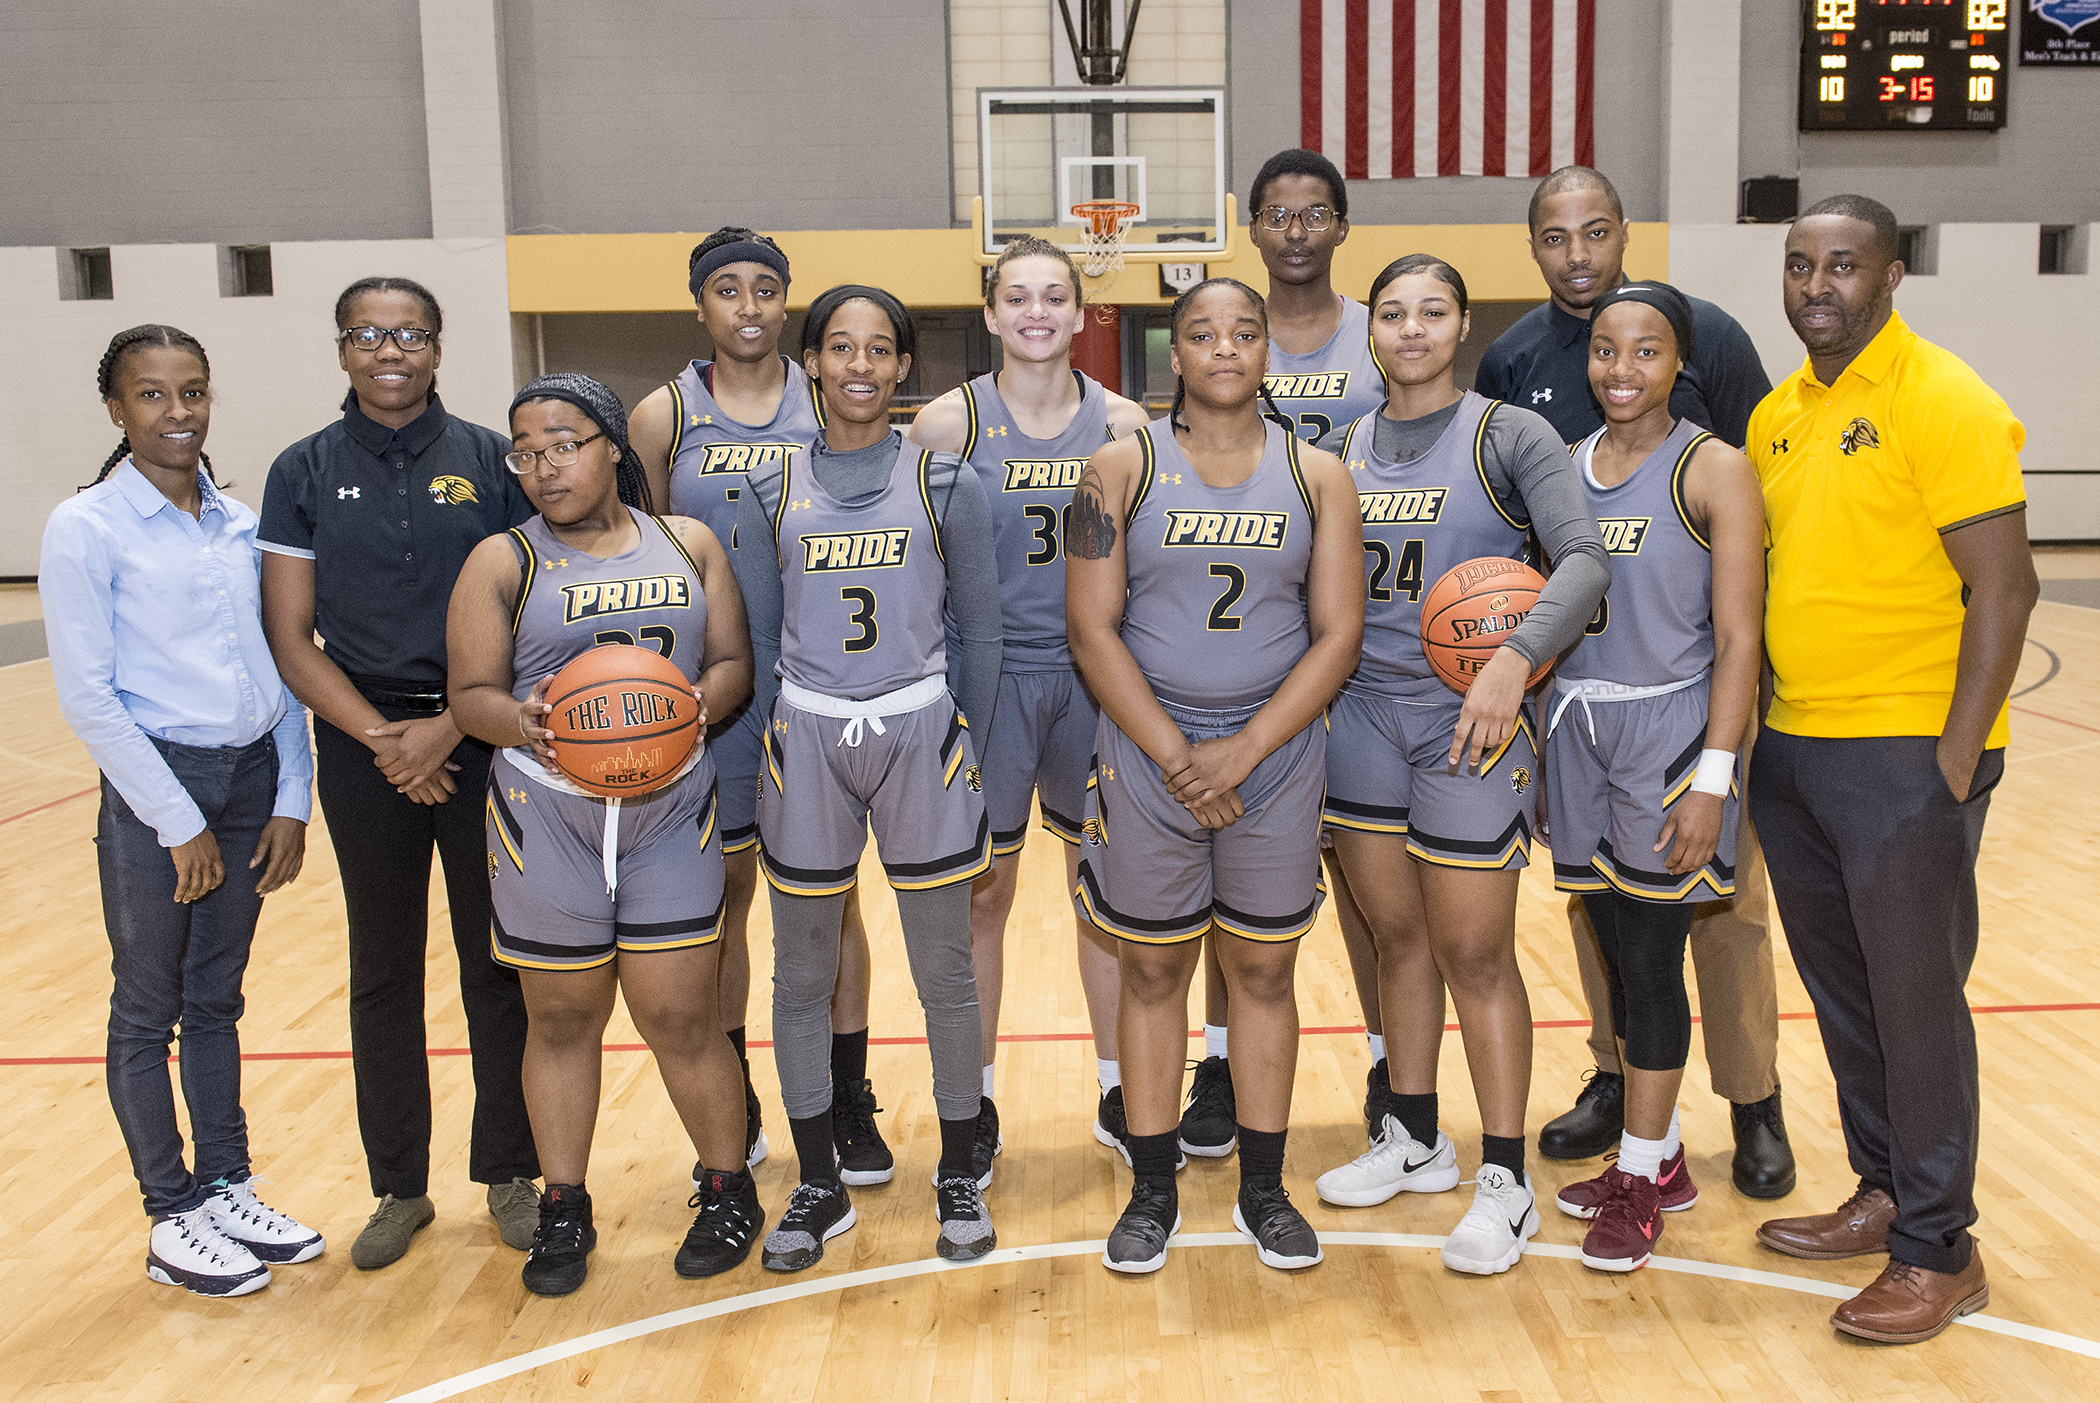 Community College of Philadelphia's women's basketball team